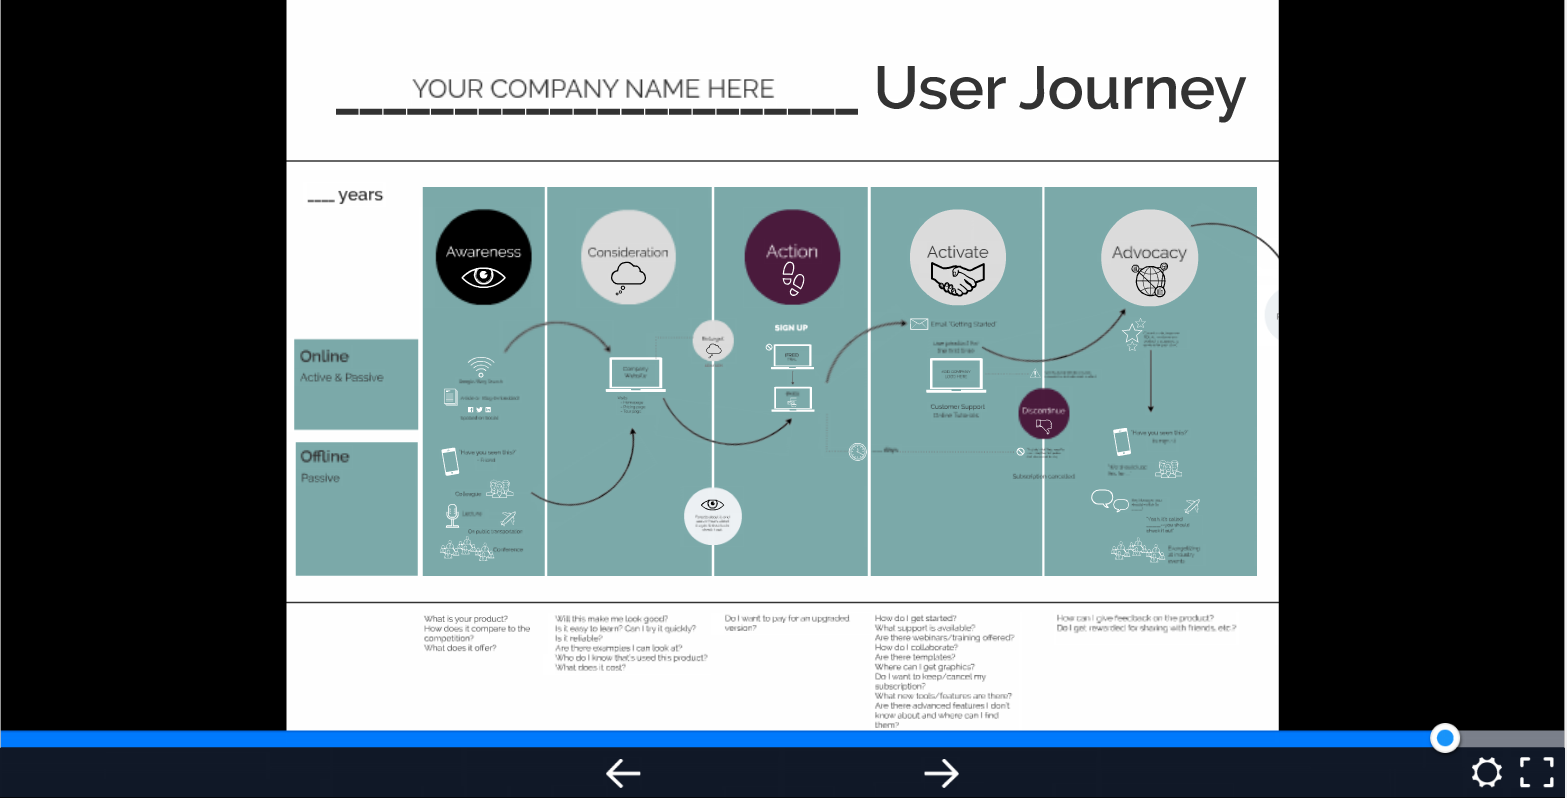 user journey prezi template.PNG